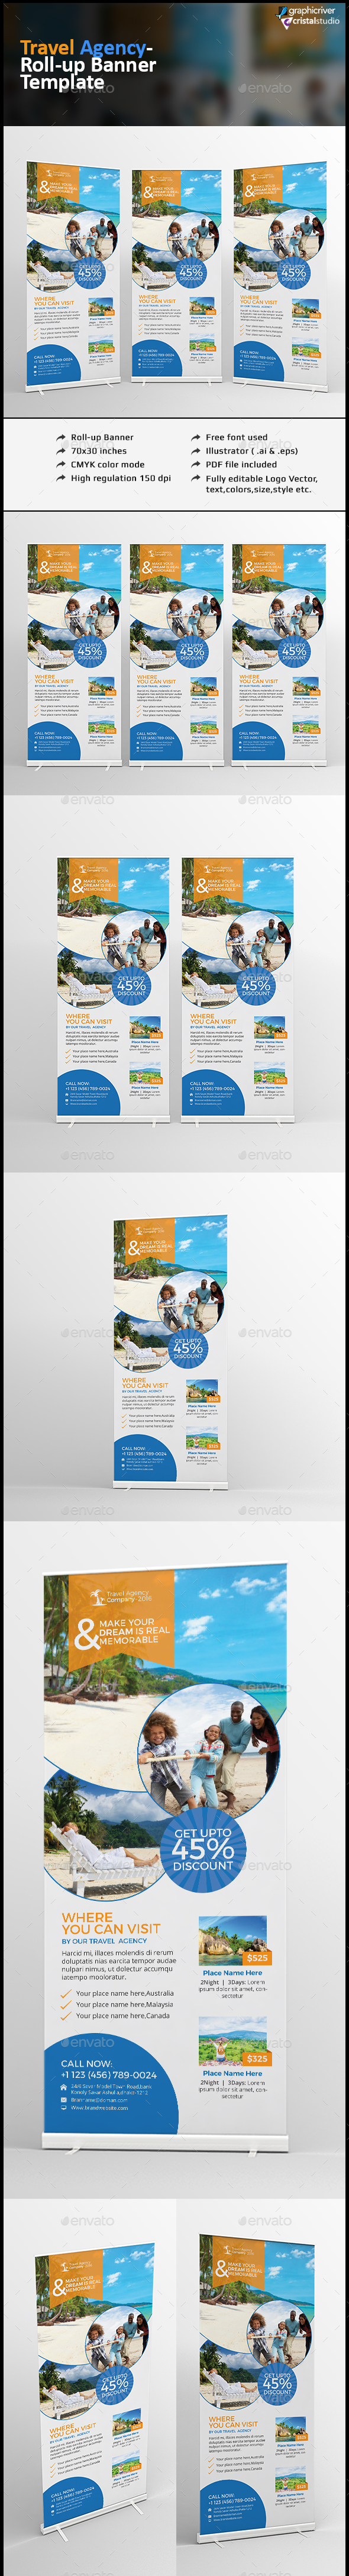 Travel Agency Roll Up Banner - Signage Print Templates